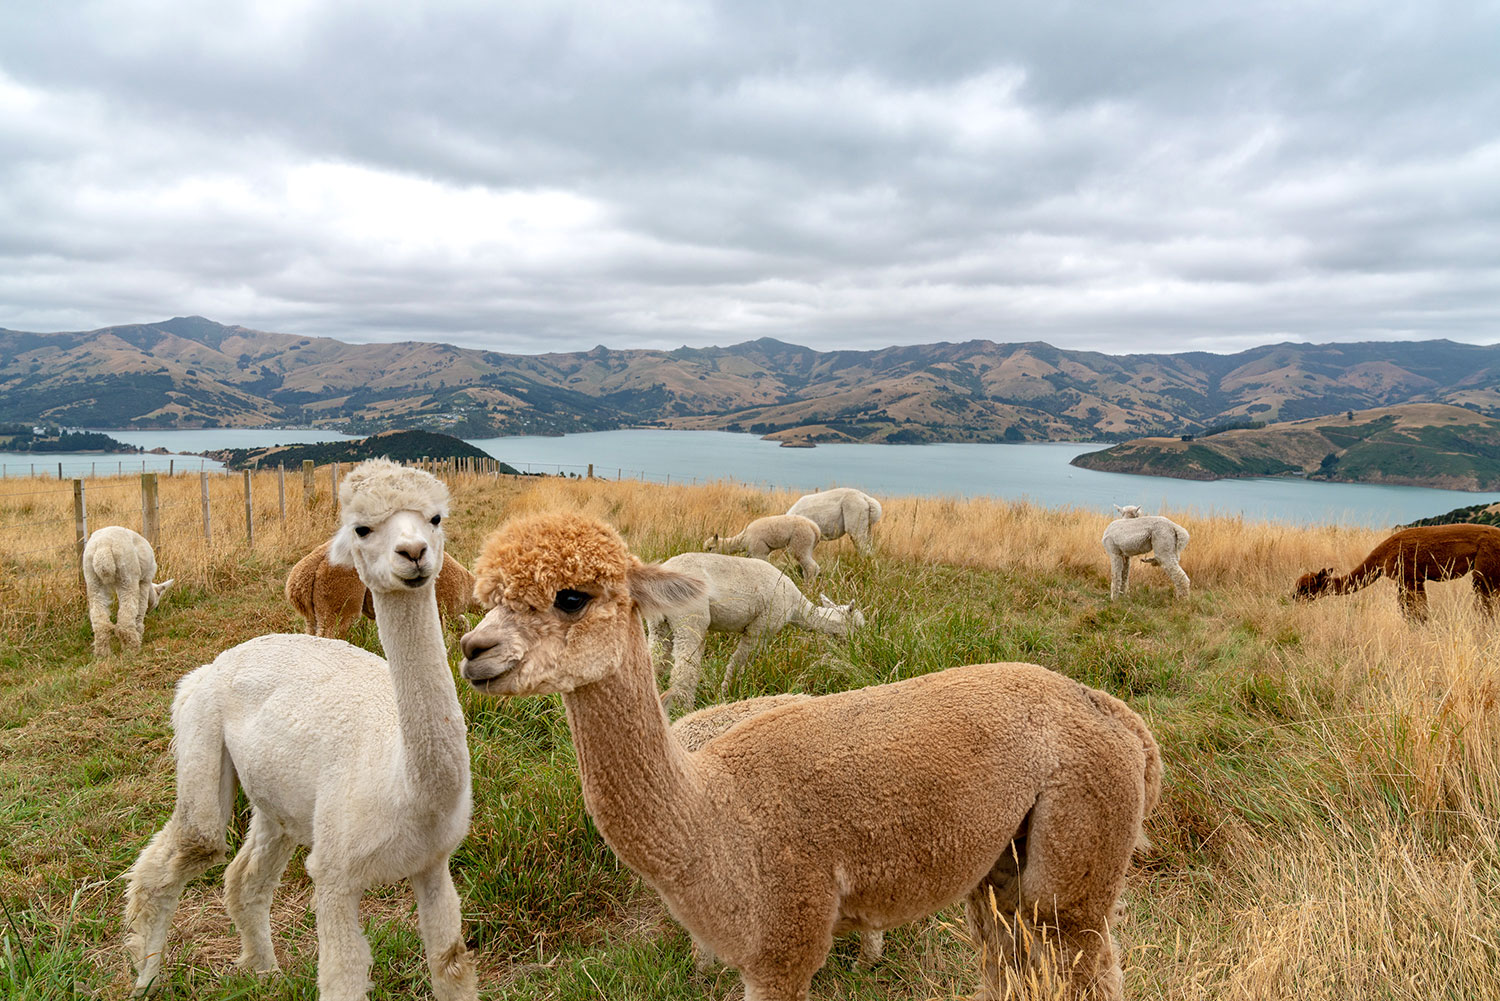 Shamarra Alpaca Farm in Akaroa, New Zealand